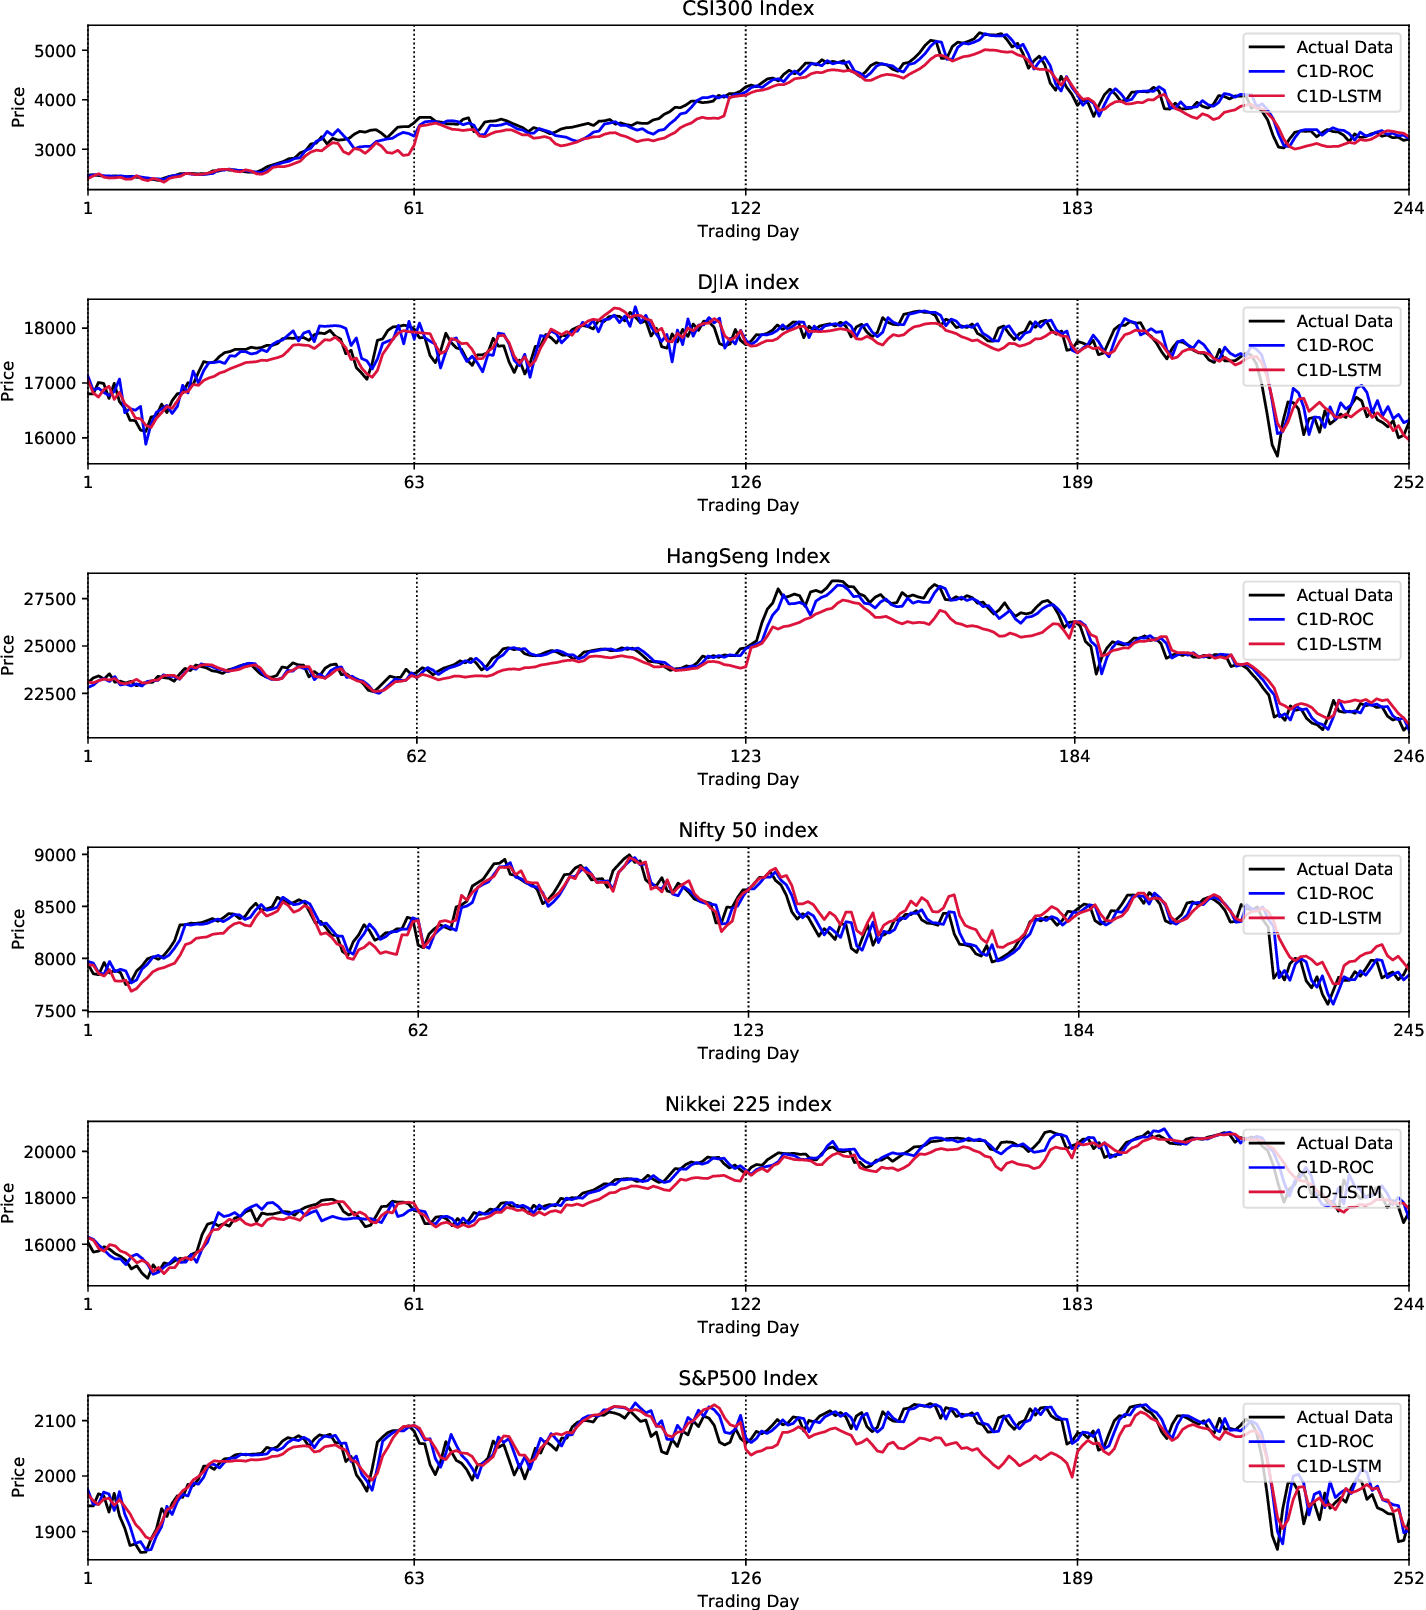 Figure 3 for Stock Prices Prediction using Deep Learning Models